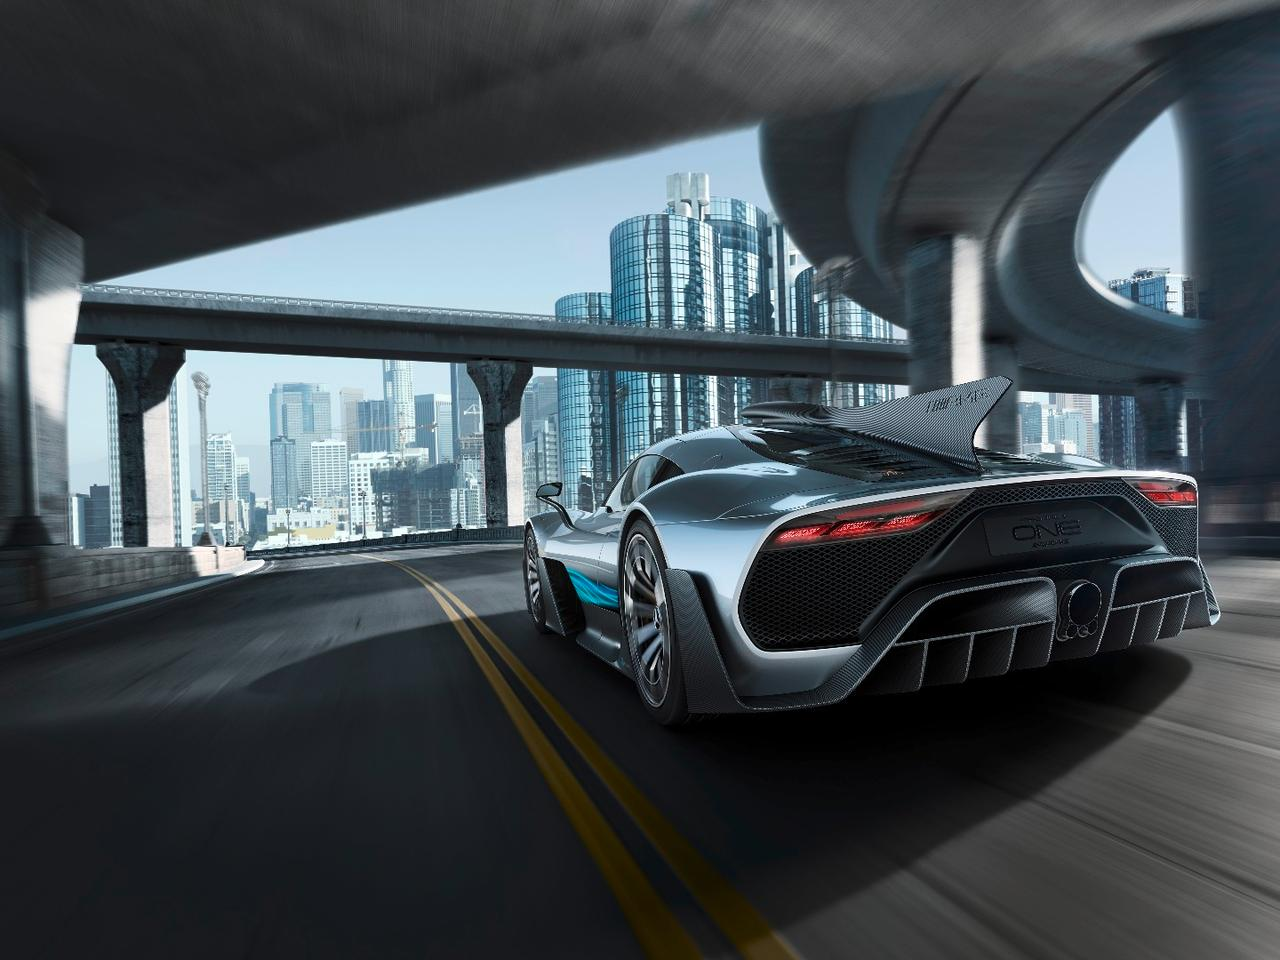 TheMercedes-AMG Project ONEshow car is expected to have a kerb weight around 1200kg. The car was developed jointly by AMG in Affalterbach, Germany, its High Performance Powertrain sister company located in Brixworth, England and the Mercedes-AMG Formula One team based in Brackley, England.